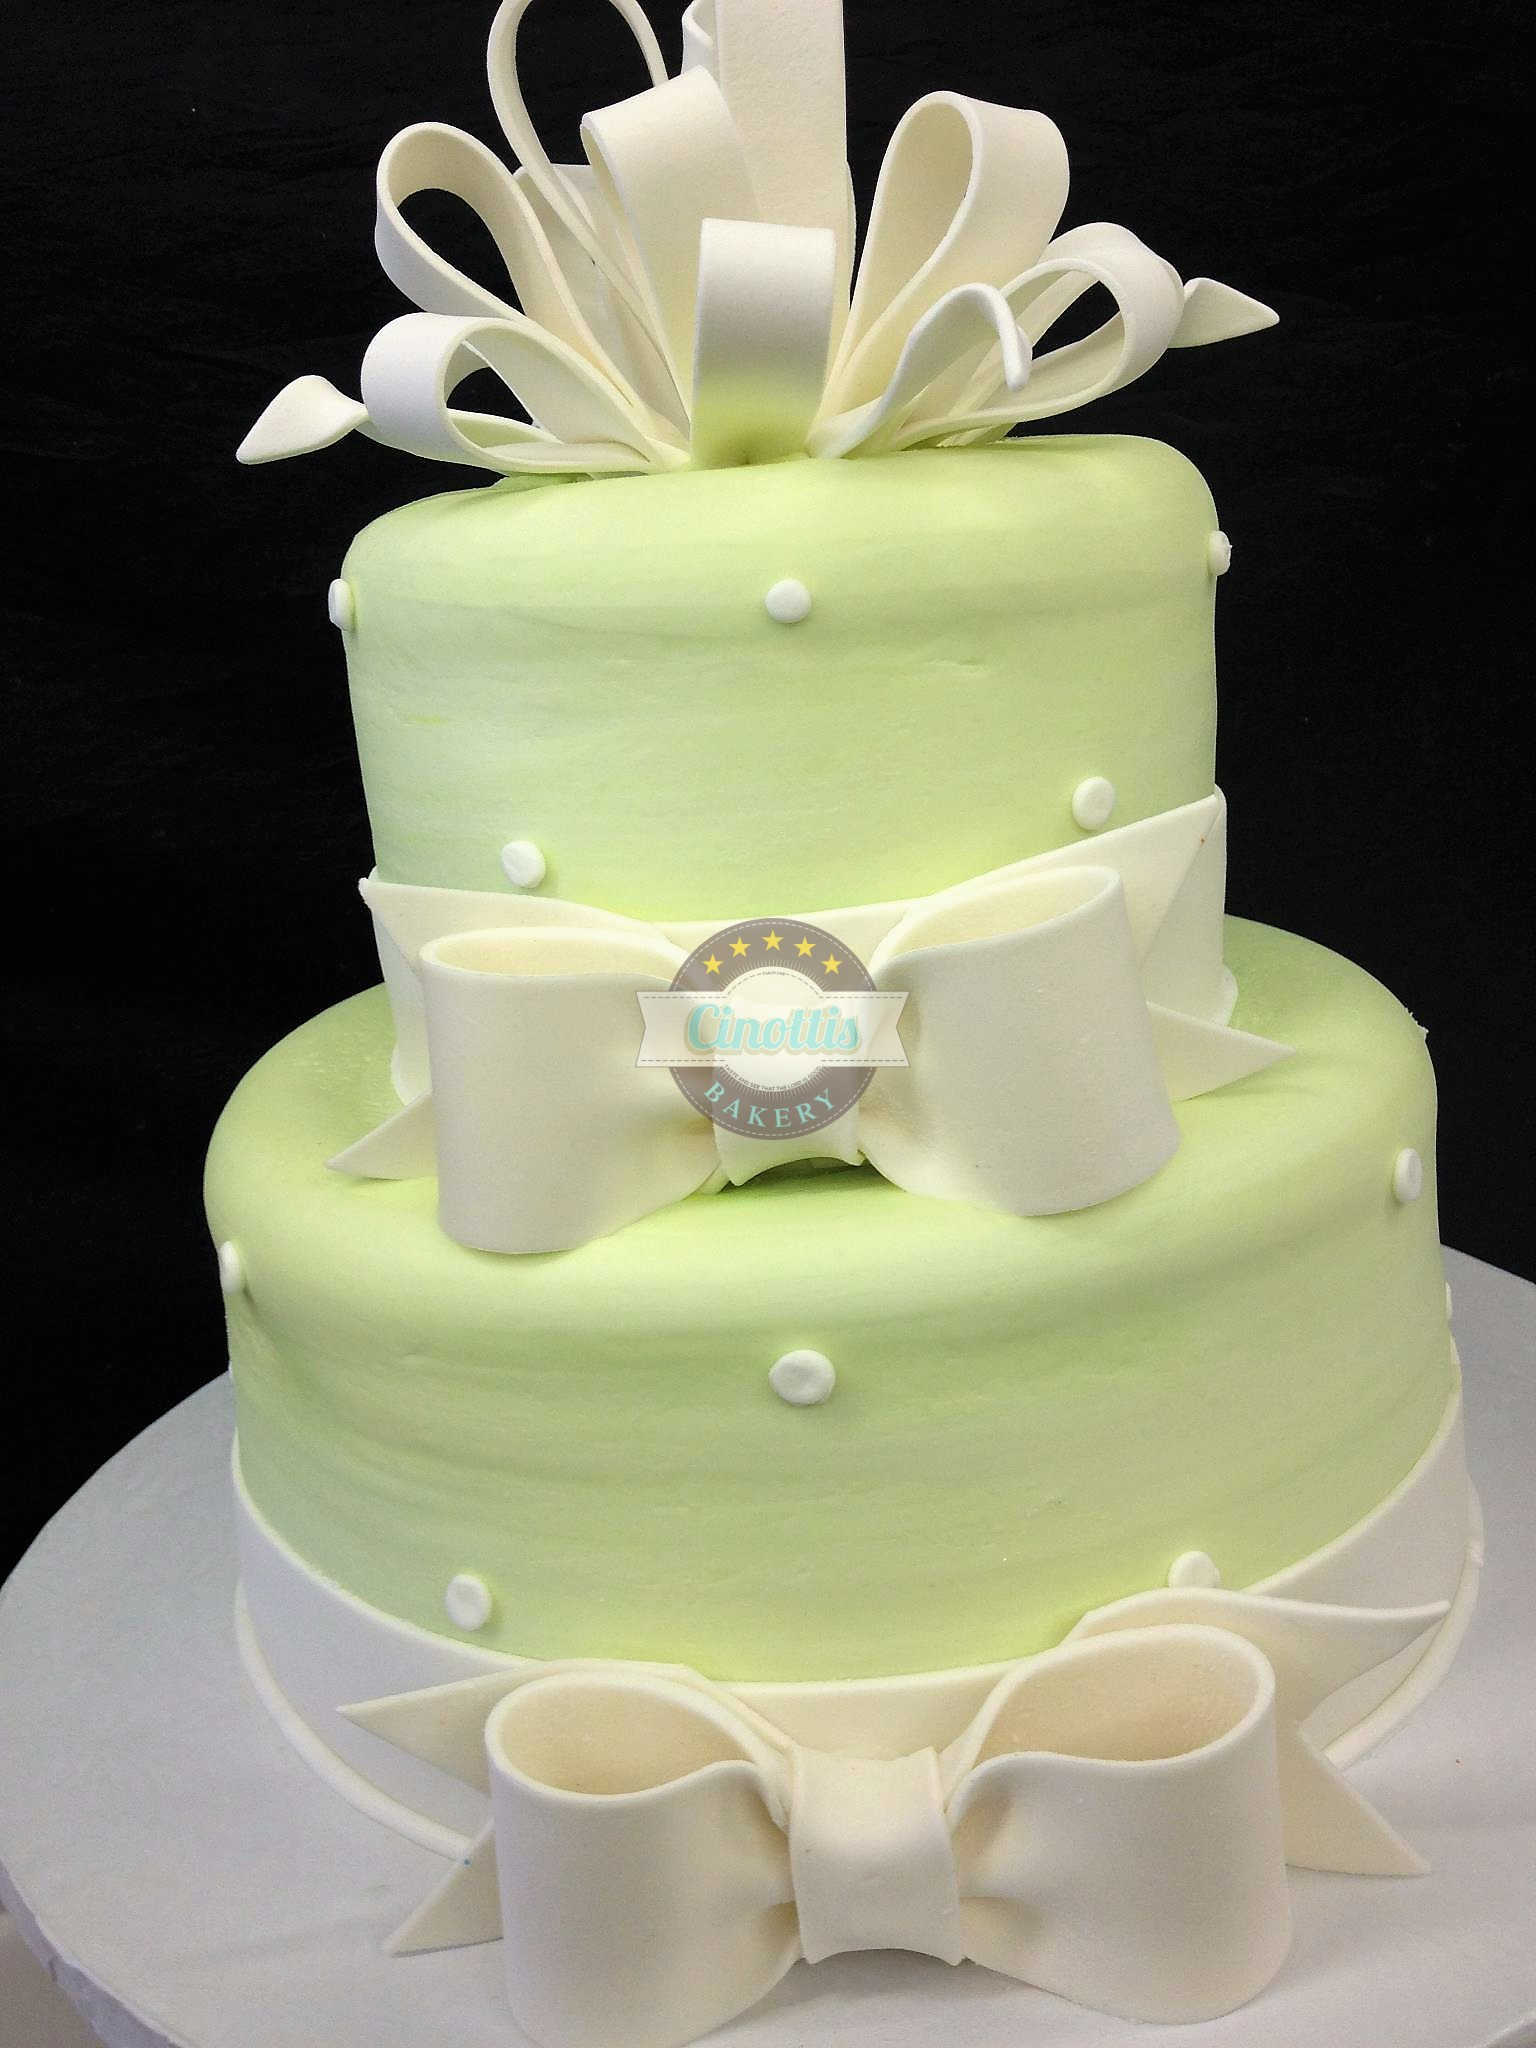 Ribbons and Bows Cake from Cinotti\'s Bakery in Jacksonville Beach